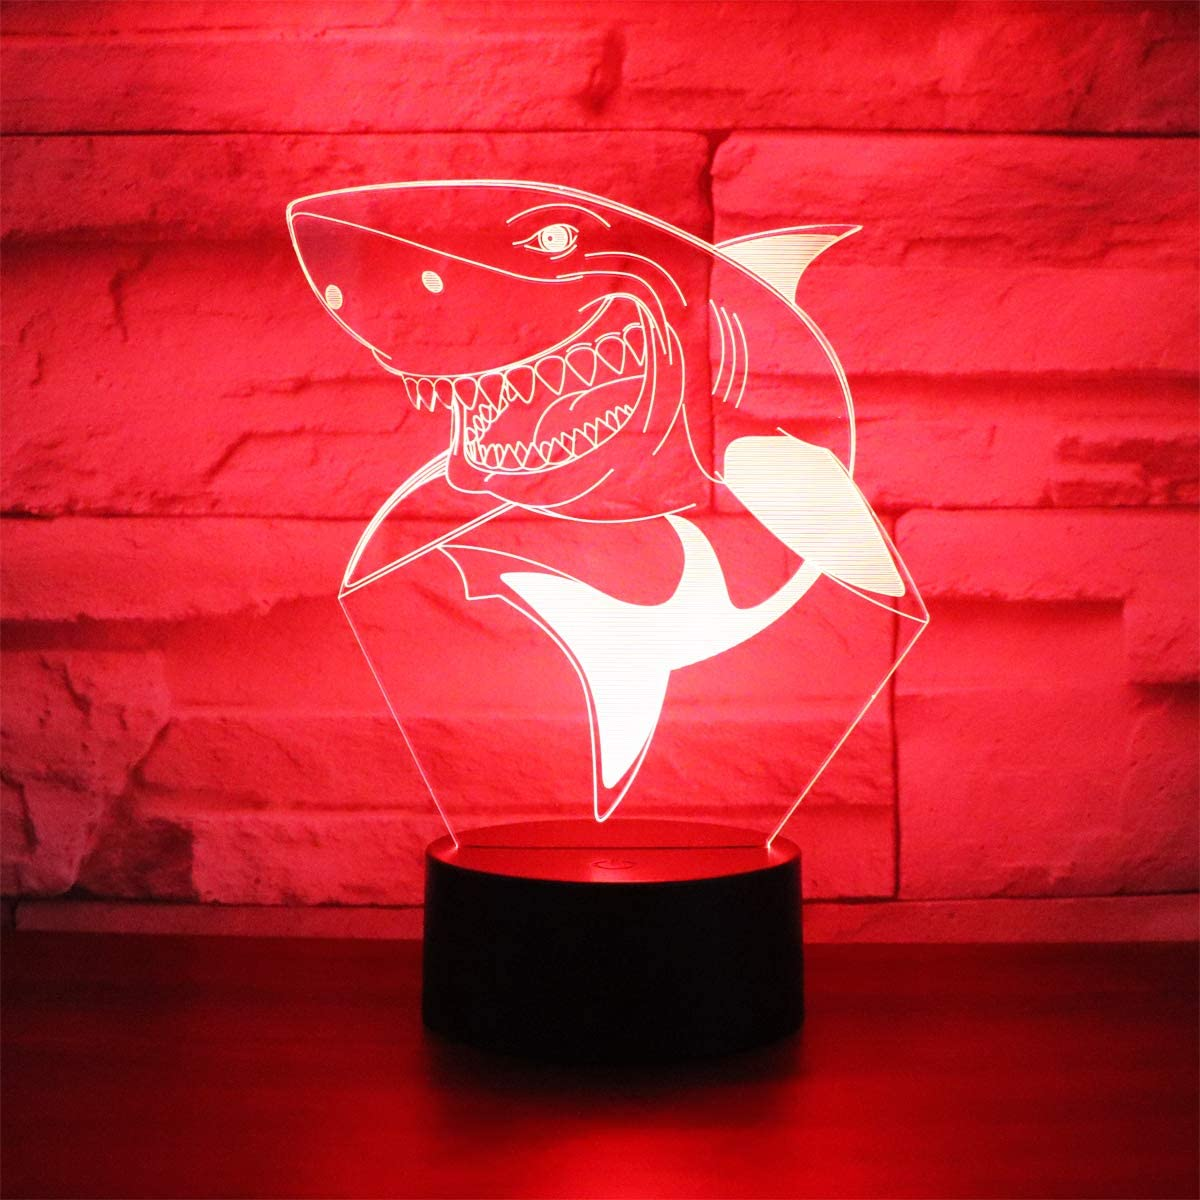 Hguangs Shark Lamp Gift Table Night Light for Kids 7 Colors Changing Touch Control Toy Christmas Birthday Valentine's Day Children